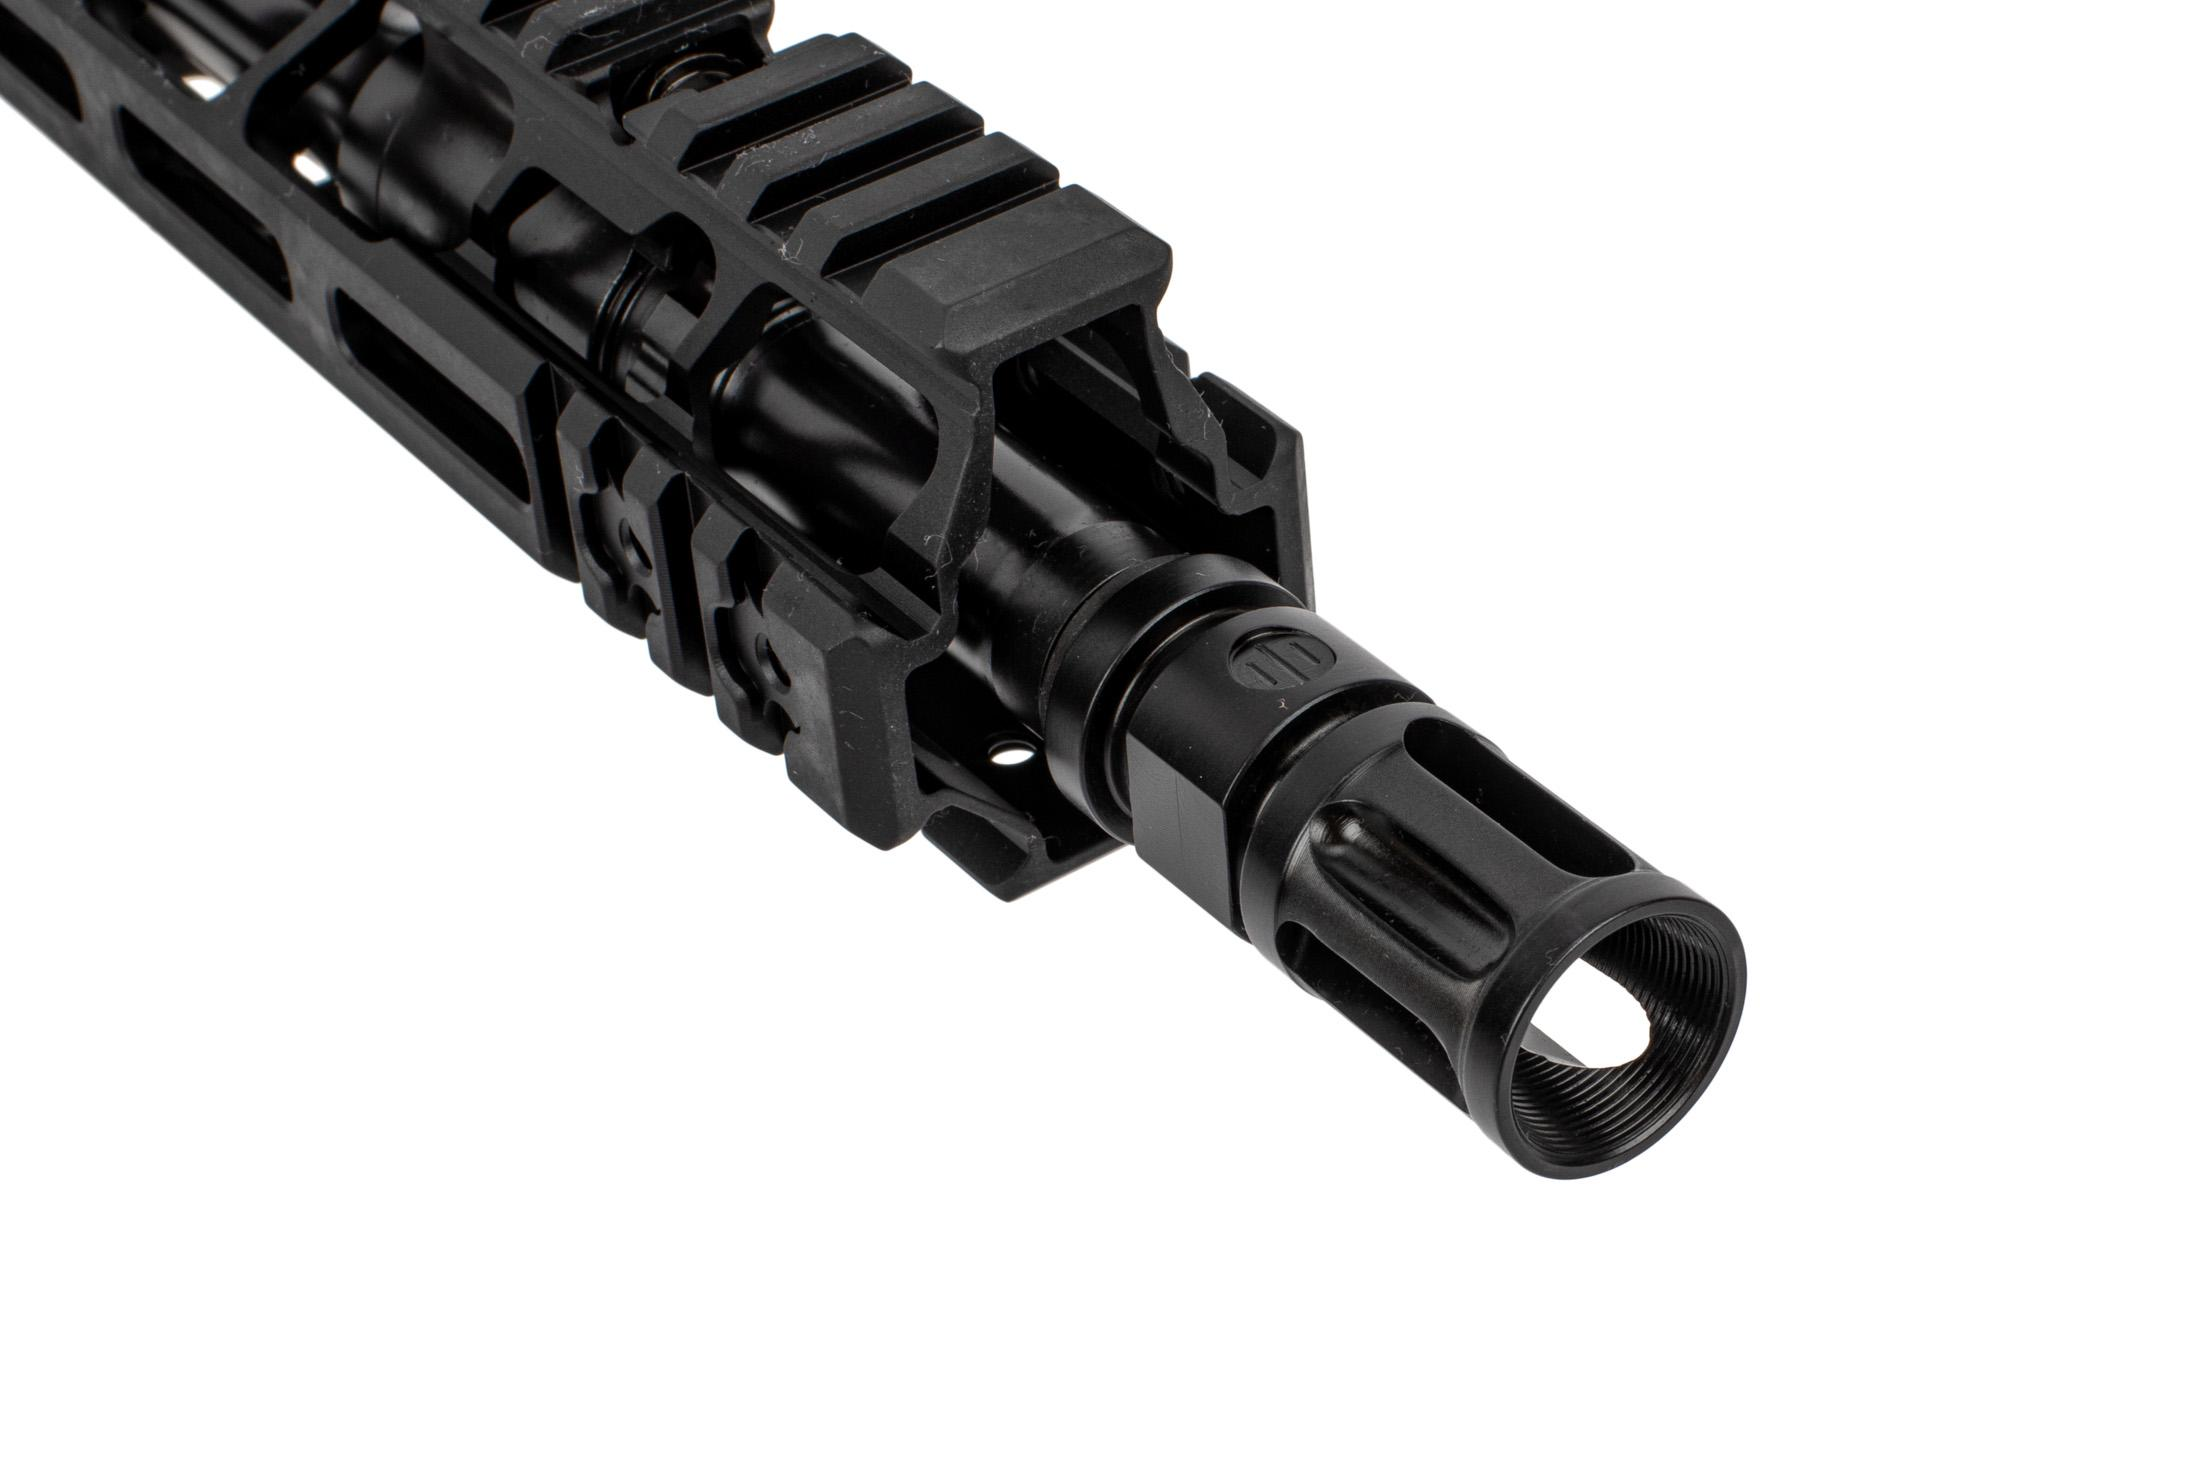 Primary Weapon Systems MK111 MOD 2-M upper receiver features a compensator and M-LOK attachment slots